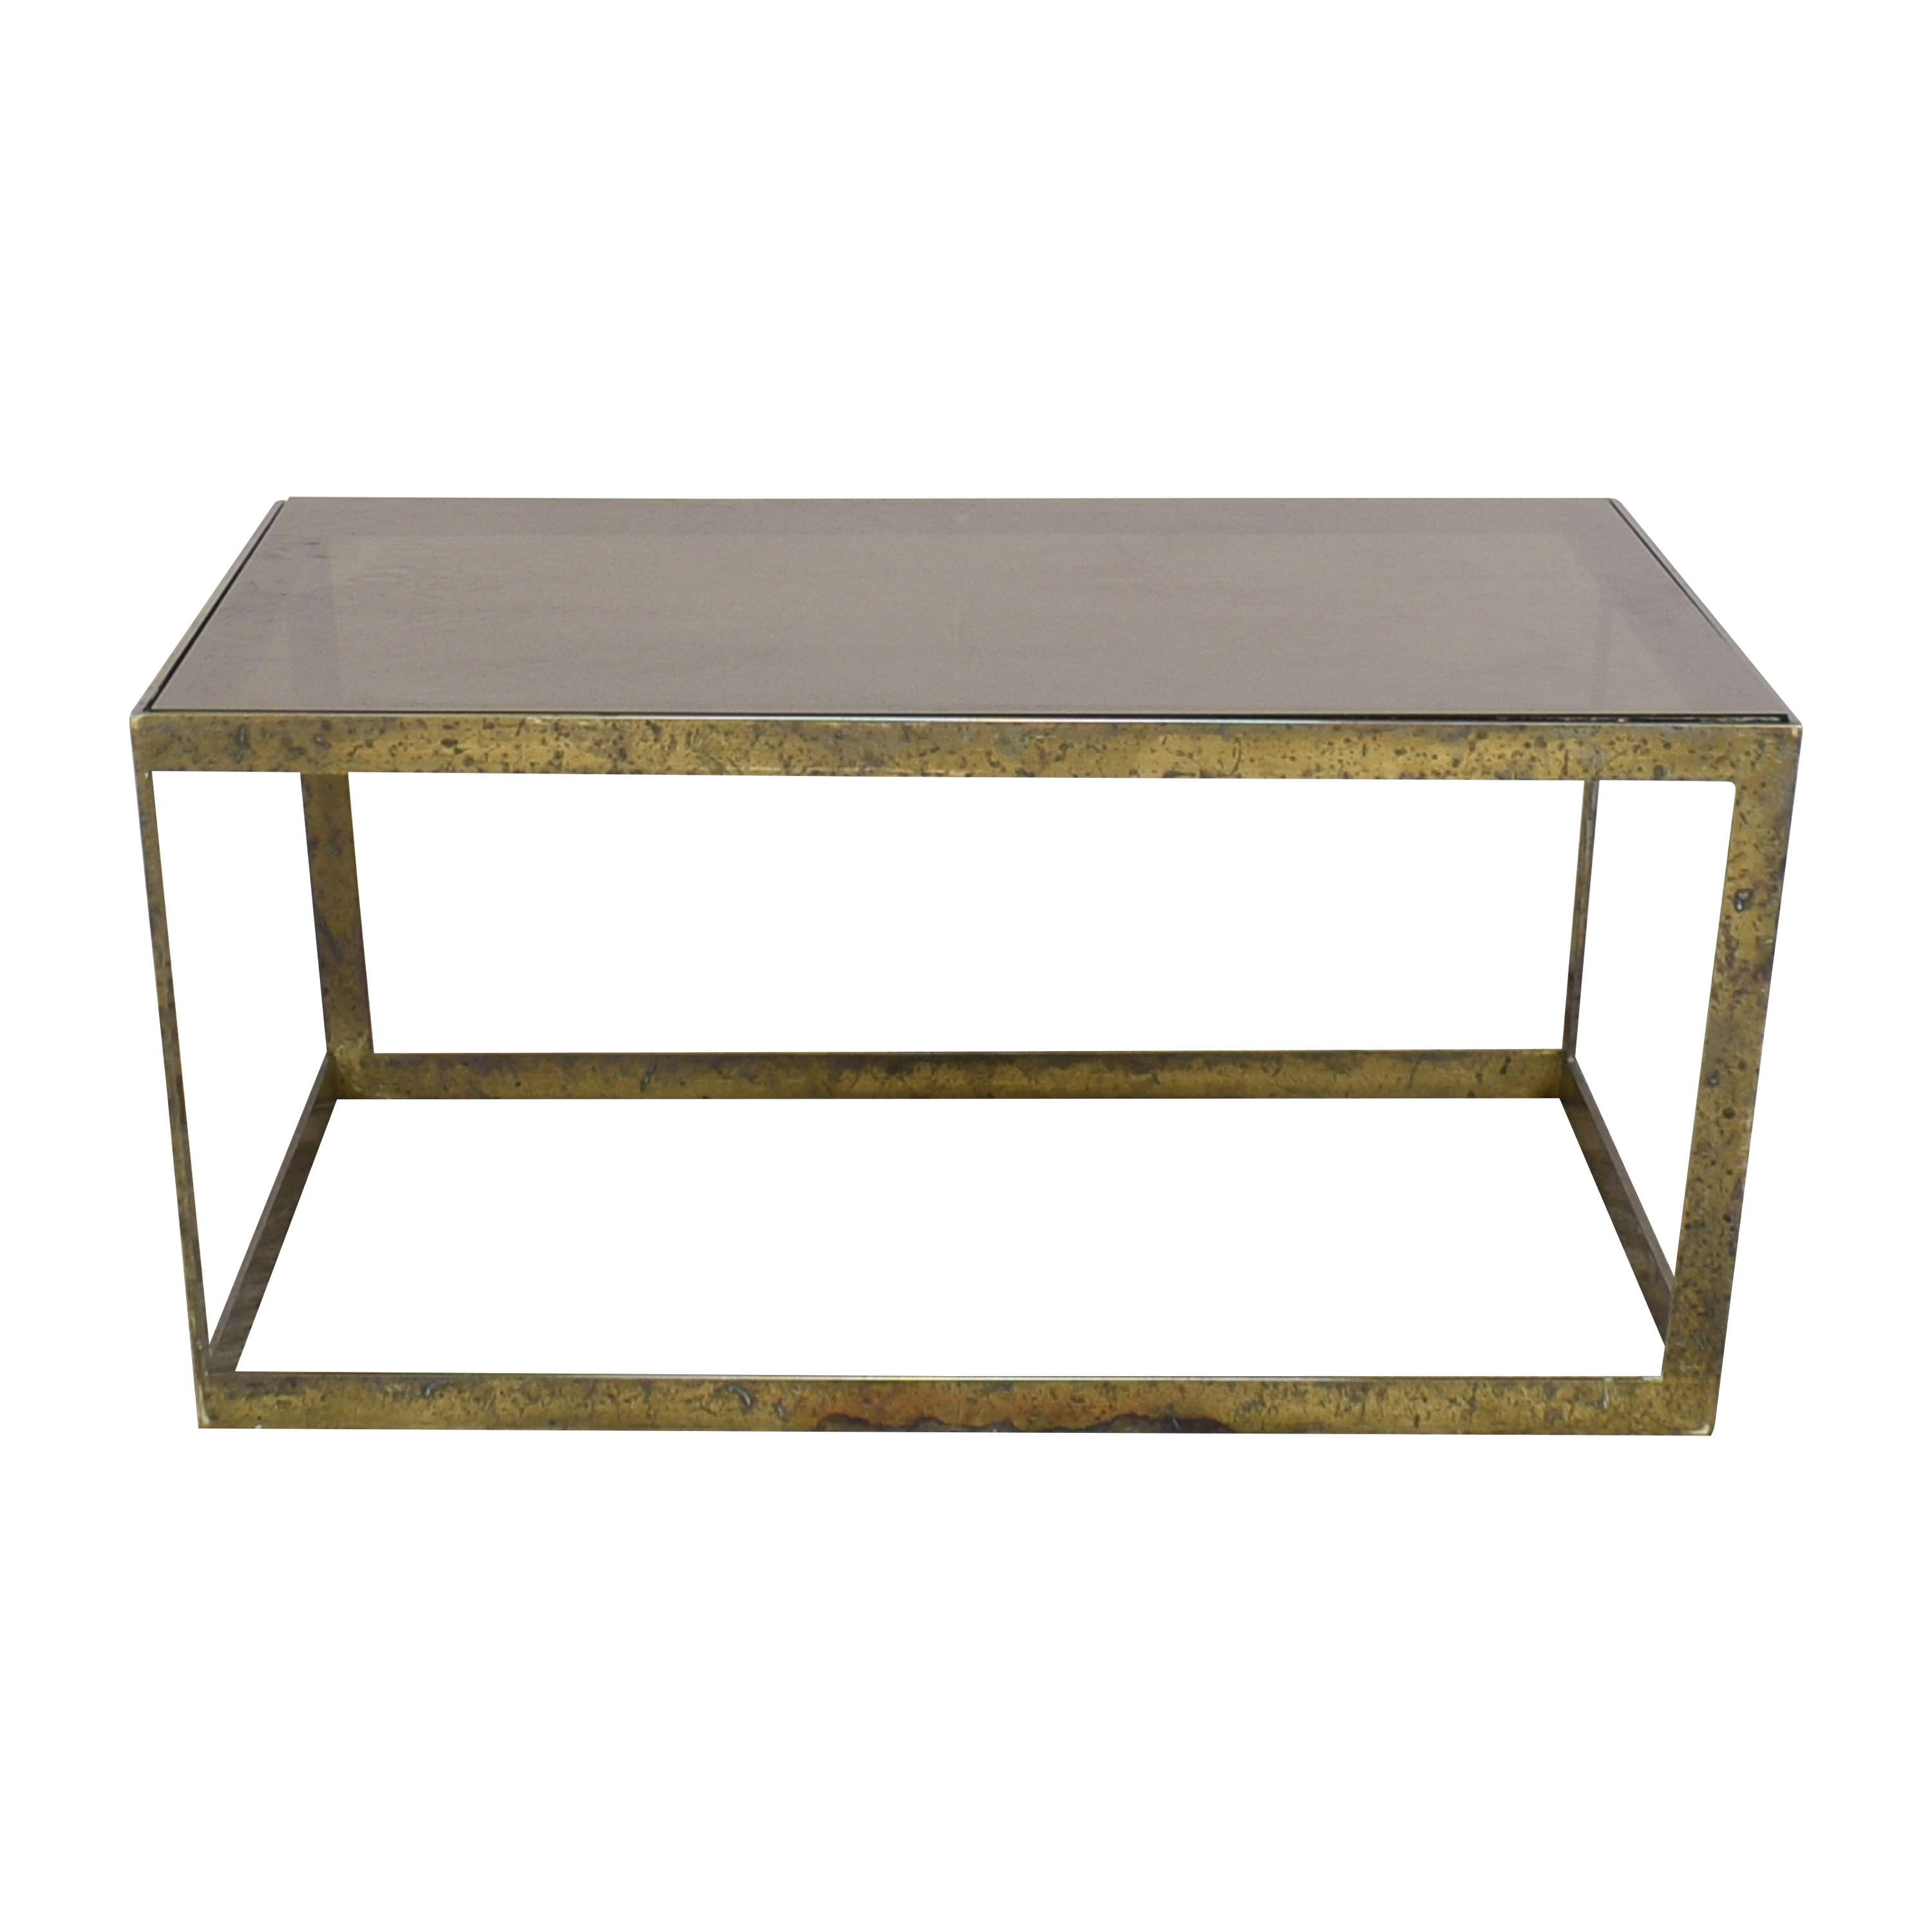 ABC Carpet & Home Square Coffee Table / Tables